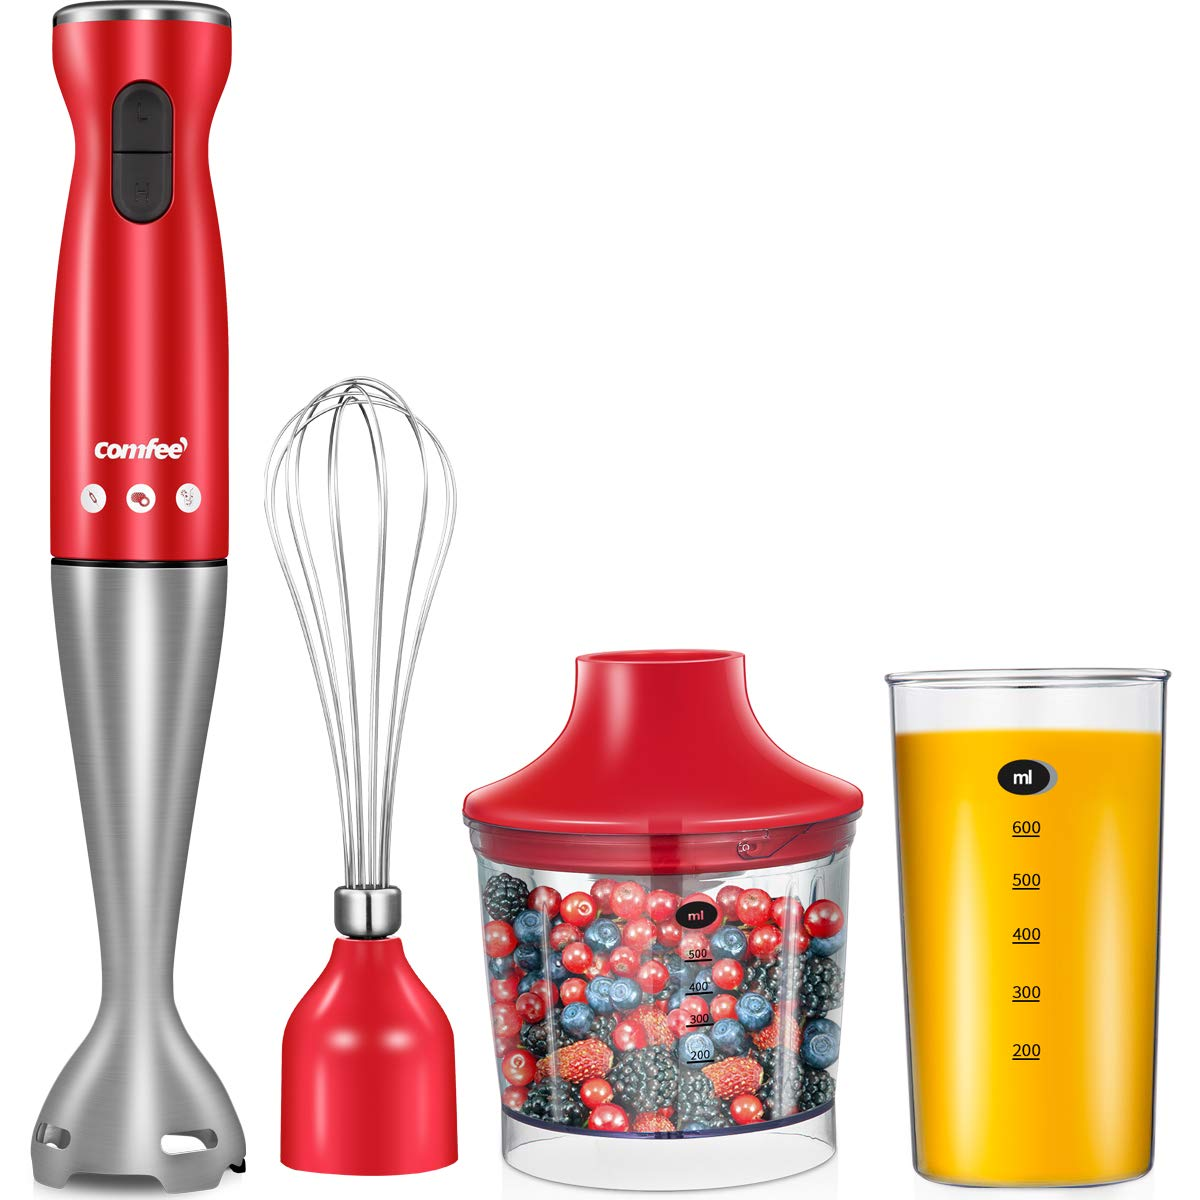 Electric Hand Immersion Blender, 4-in-1 Hand Mixer with 500ml Food Chopper, 600ml Beaker, Balloon Whisk, Stainless Steel Blending Shaft by Comfee